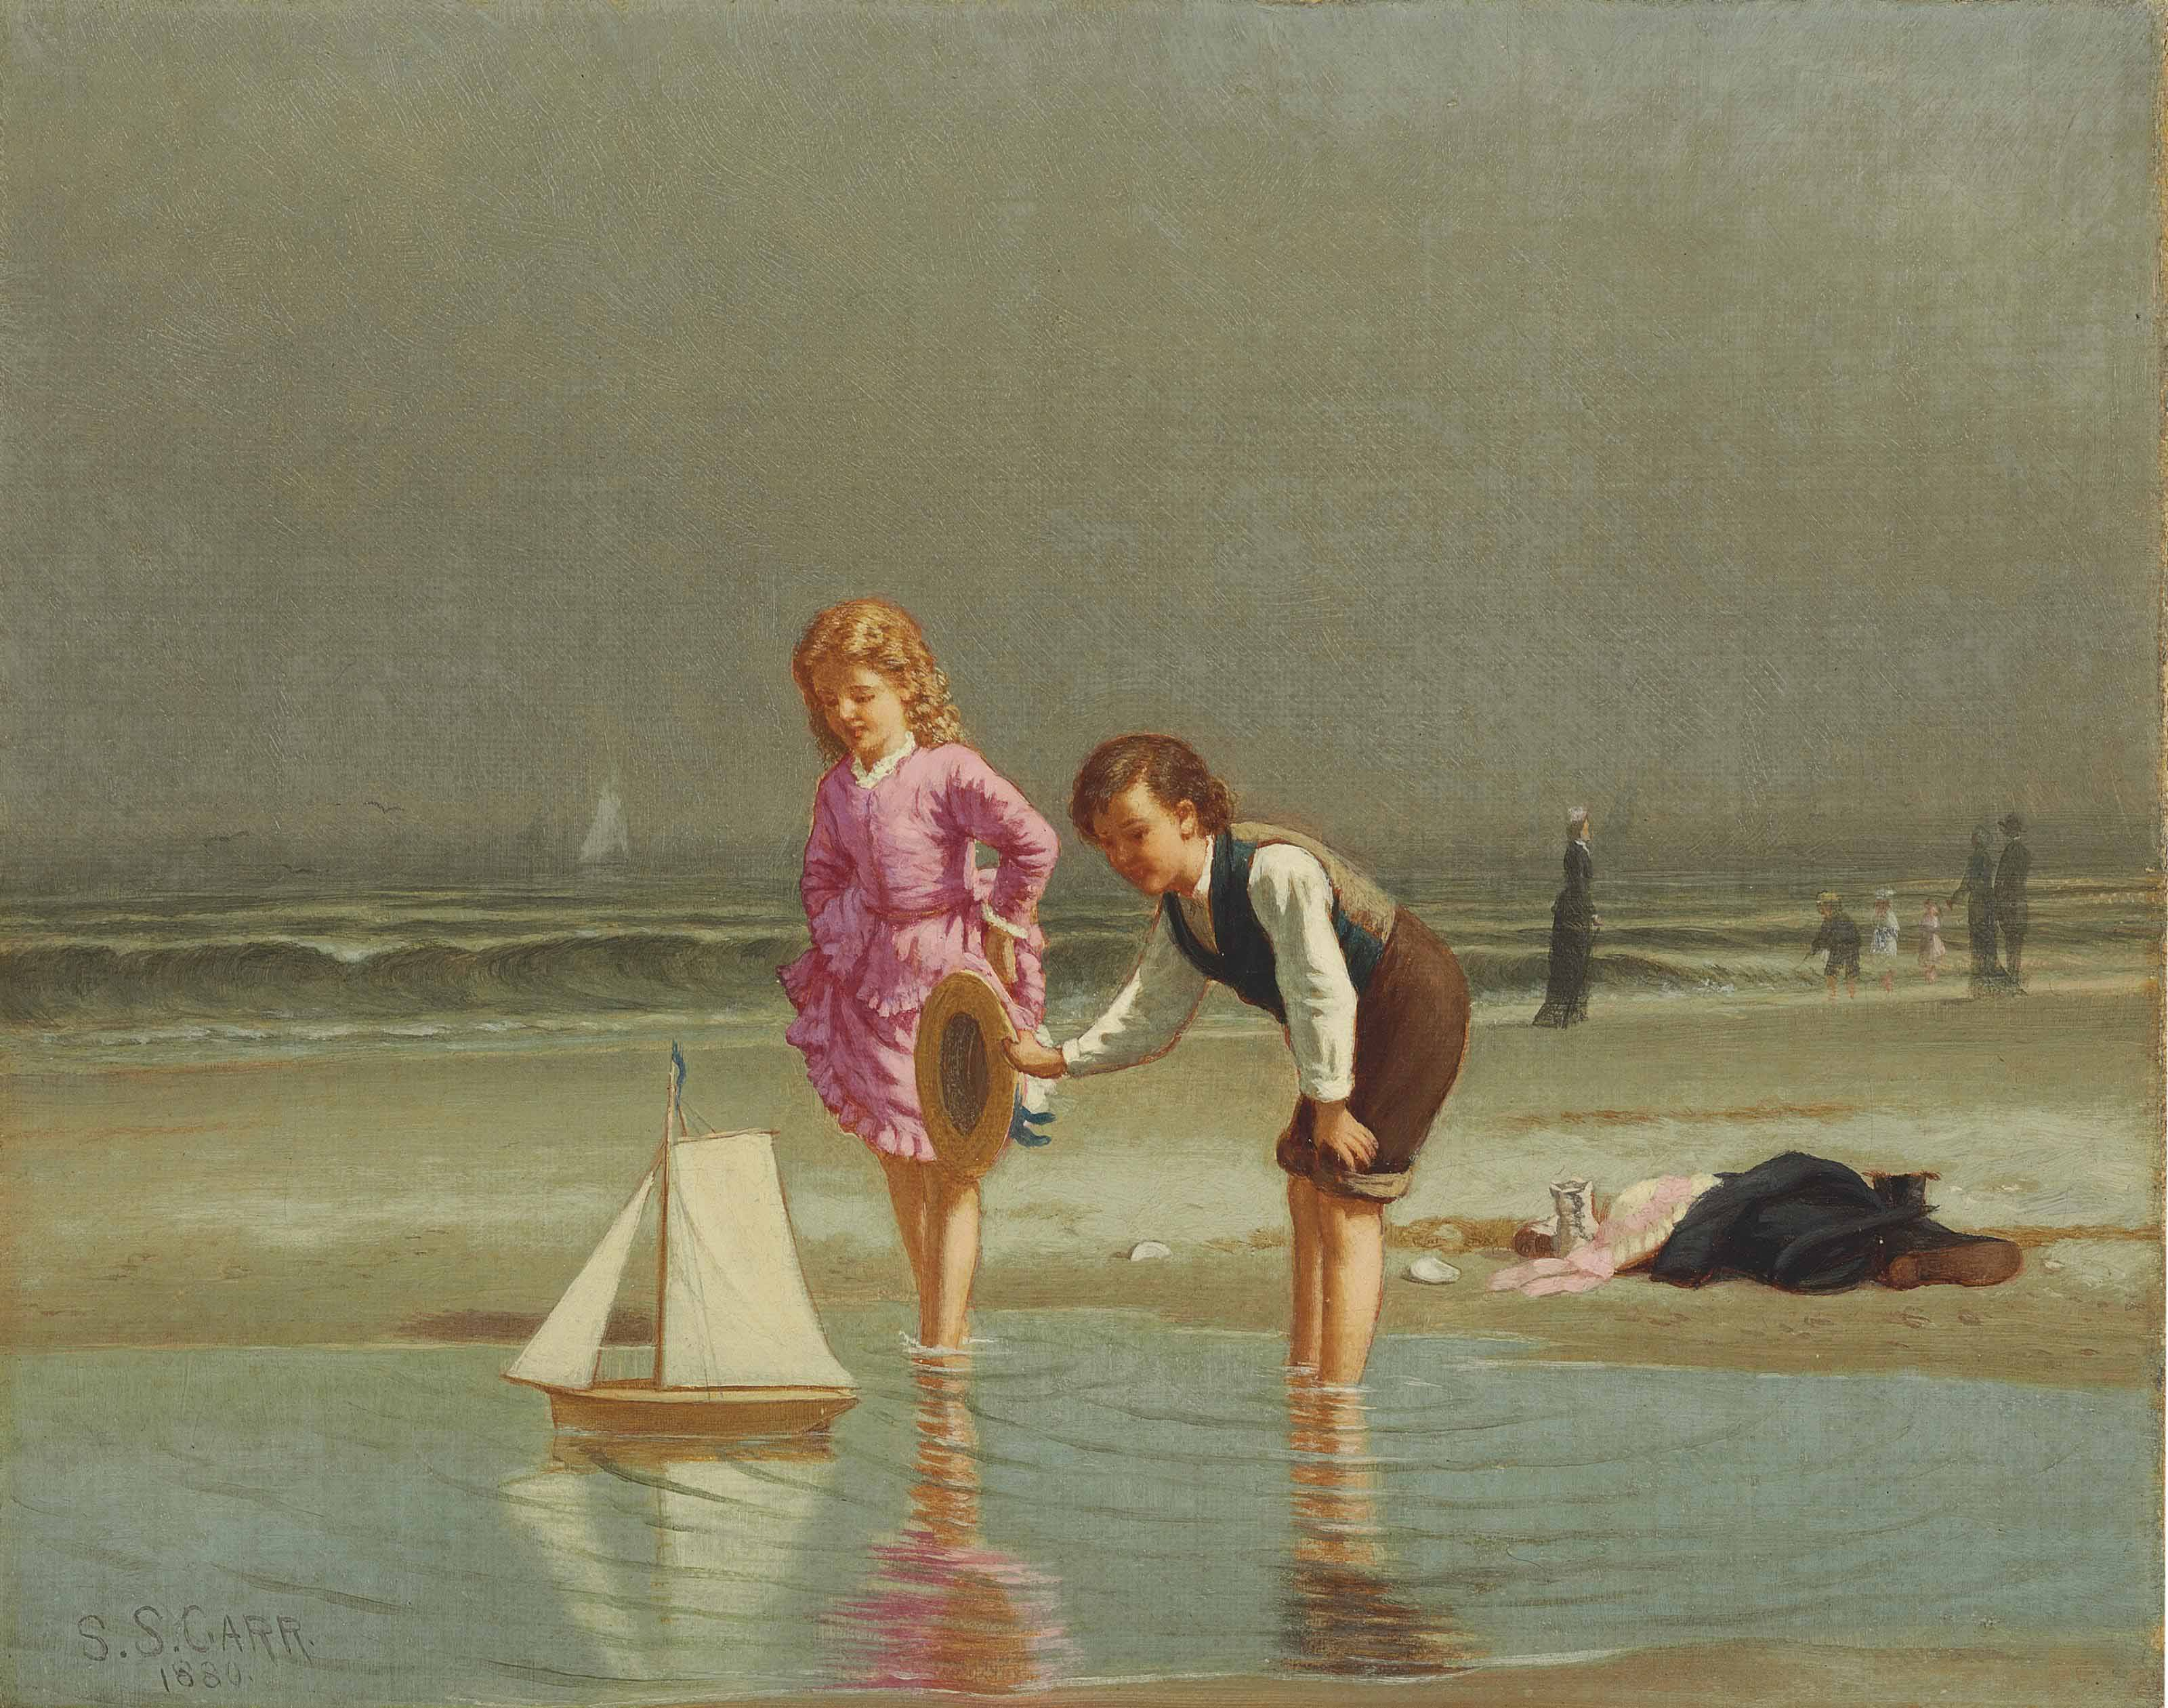 Children Playing with Toy Sailboat